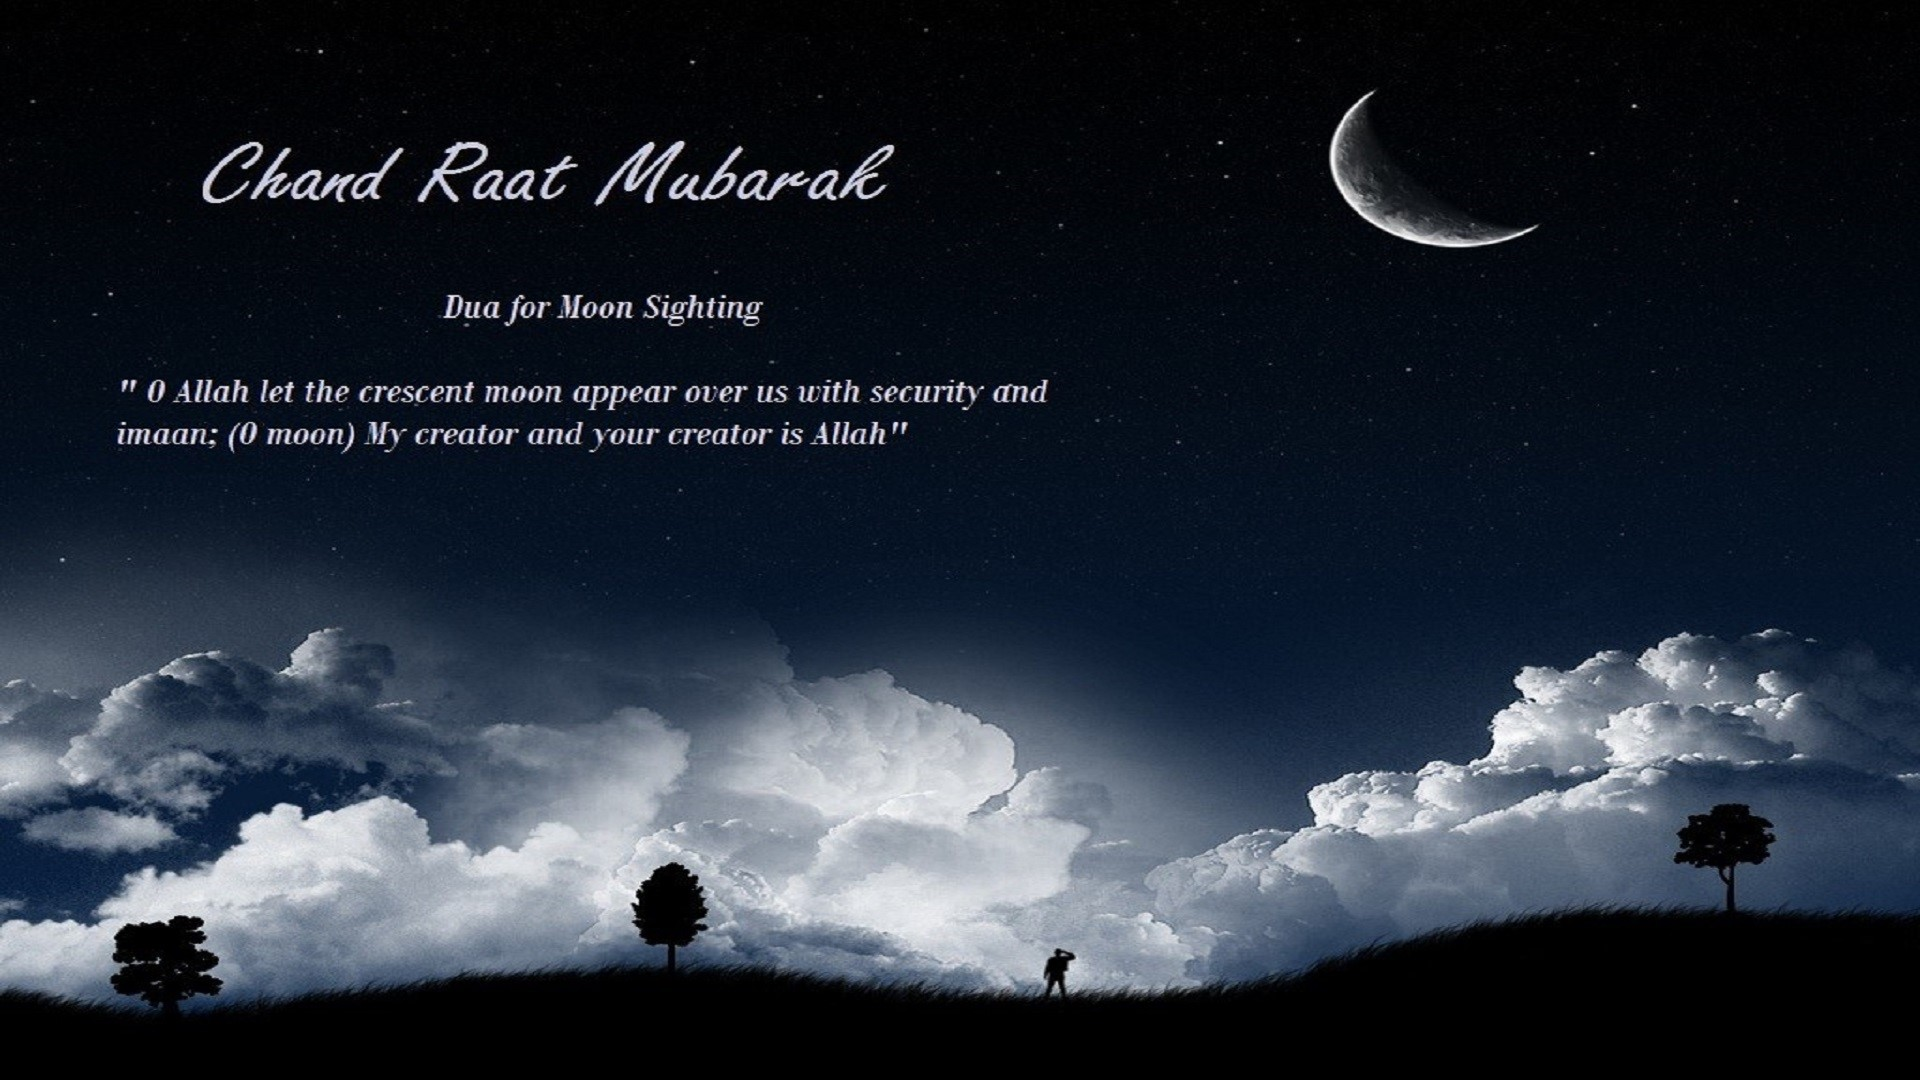 chand-raat-mubarak-free-hd-wallpapers